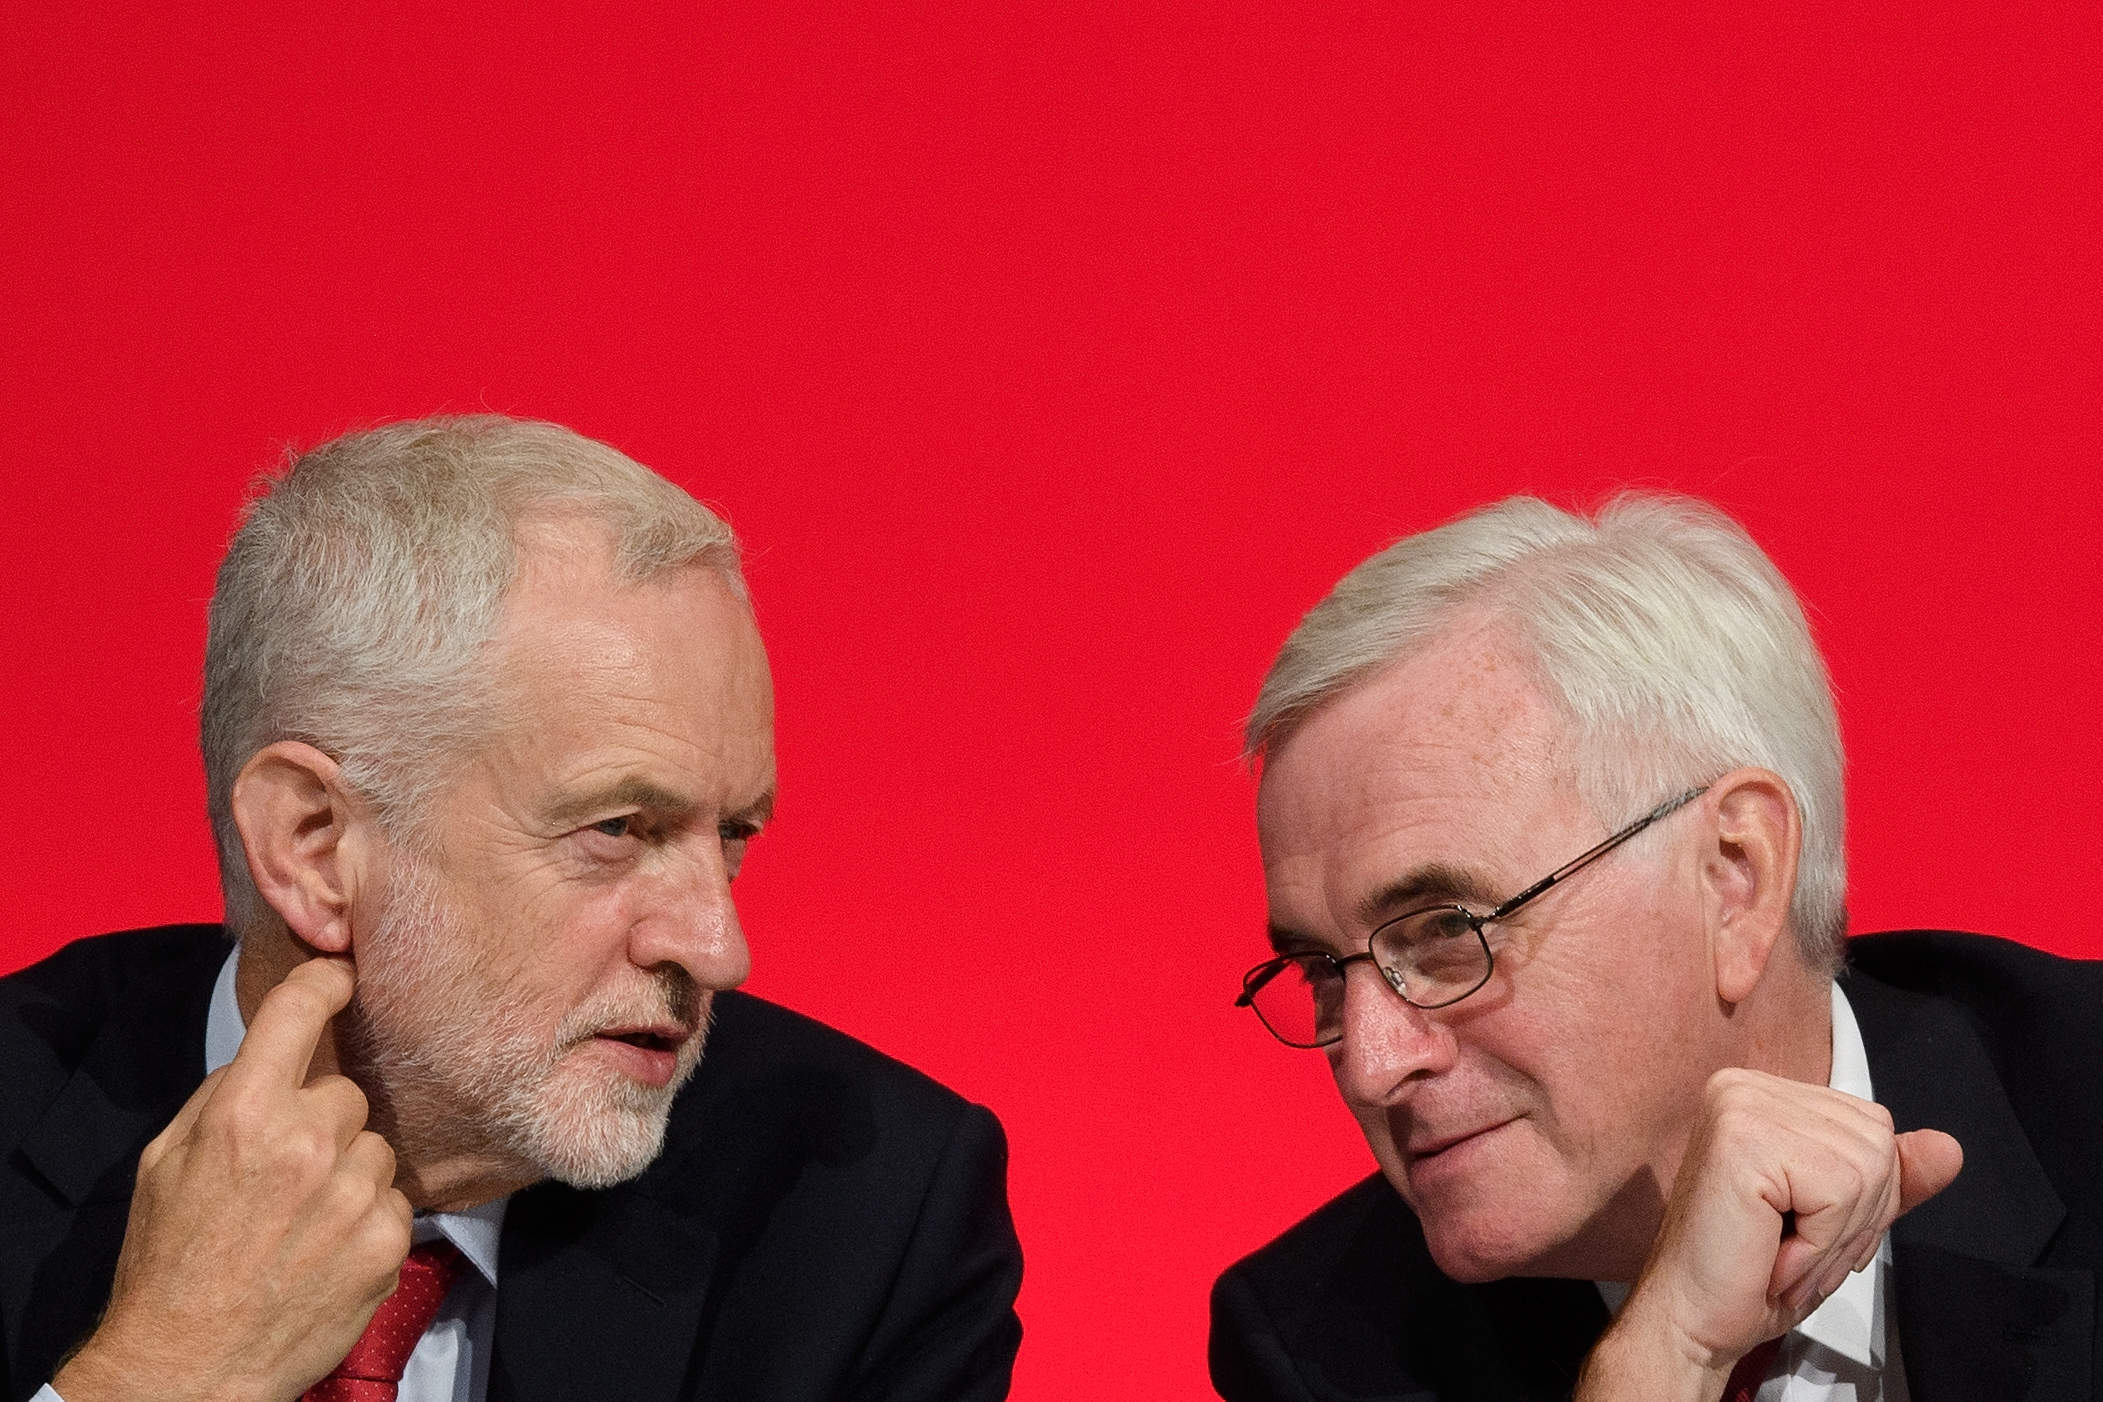 Leader: What does Labour want?